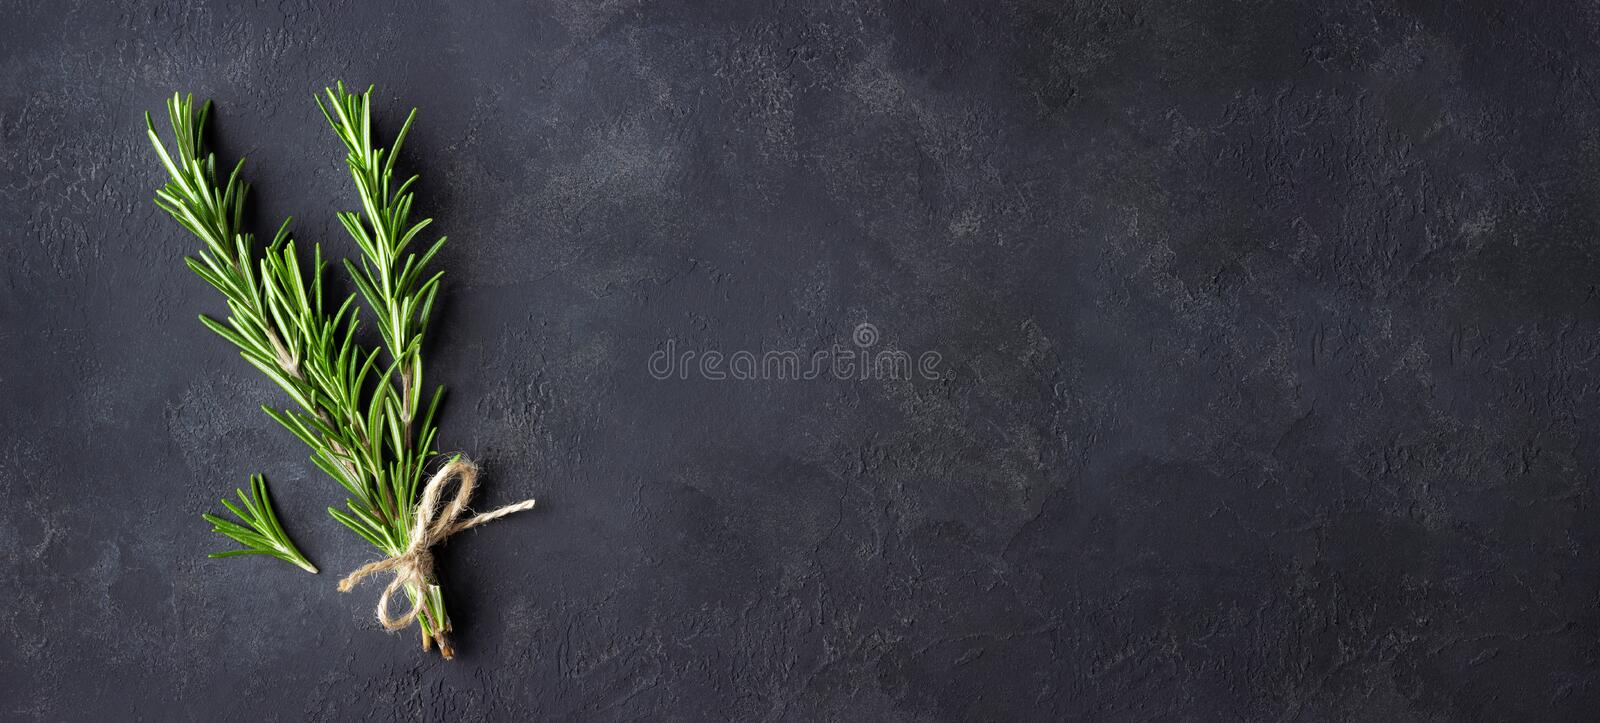 Rosemary herbs on dark stone background. Copy space for menu or recipe stock image